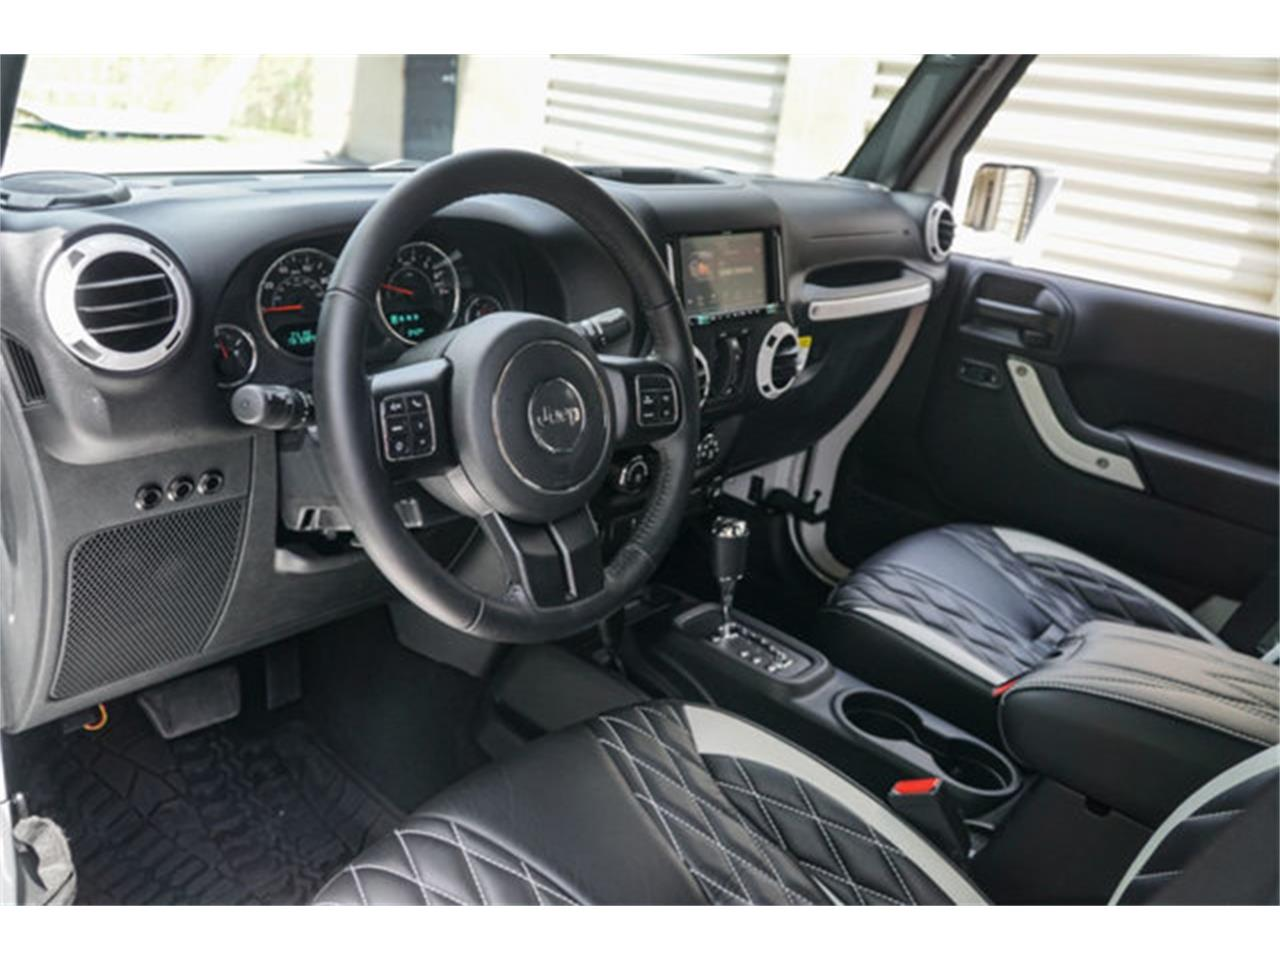 Large Picture of '18 Jeep Wrangler located in Florida - $51,900.00 - Q4VB